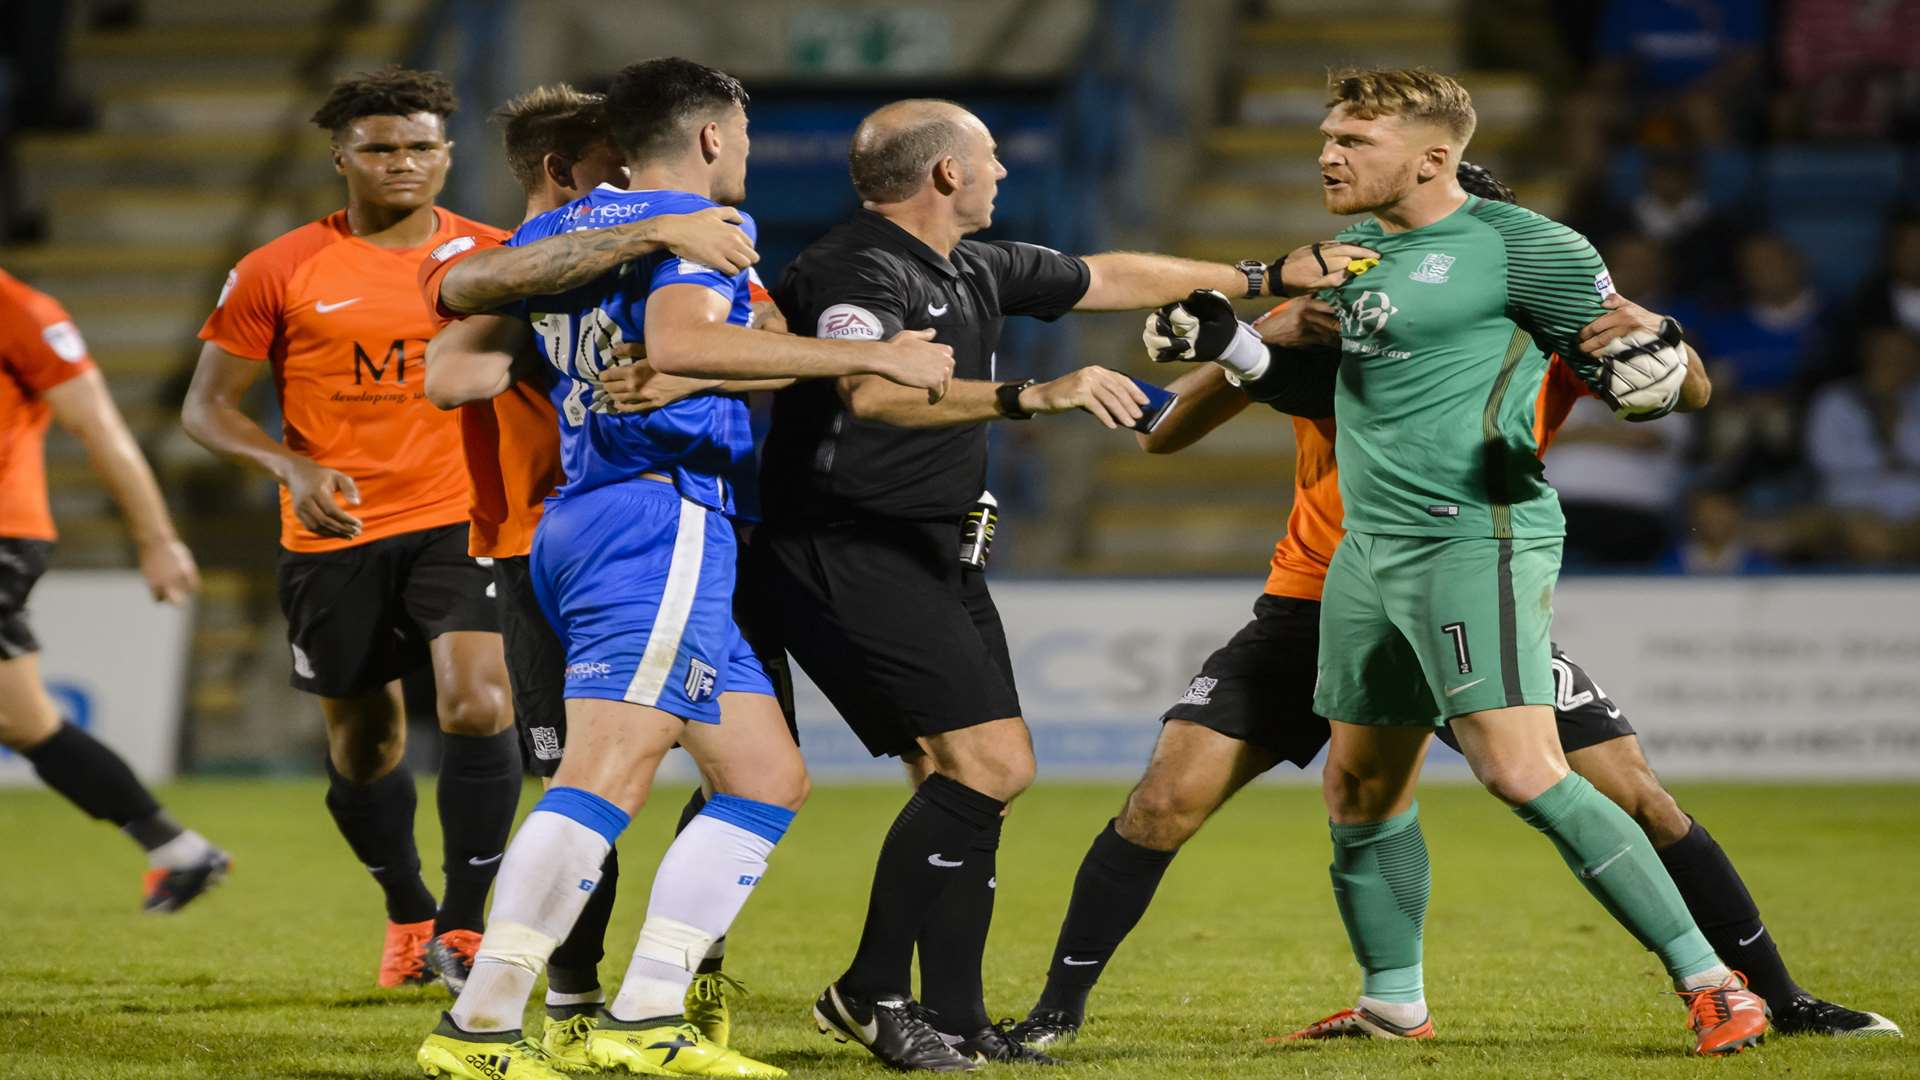 Conor Wilkinson got a yellow card for a late challenge on the Southend keeper Picture: Andy Payton